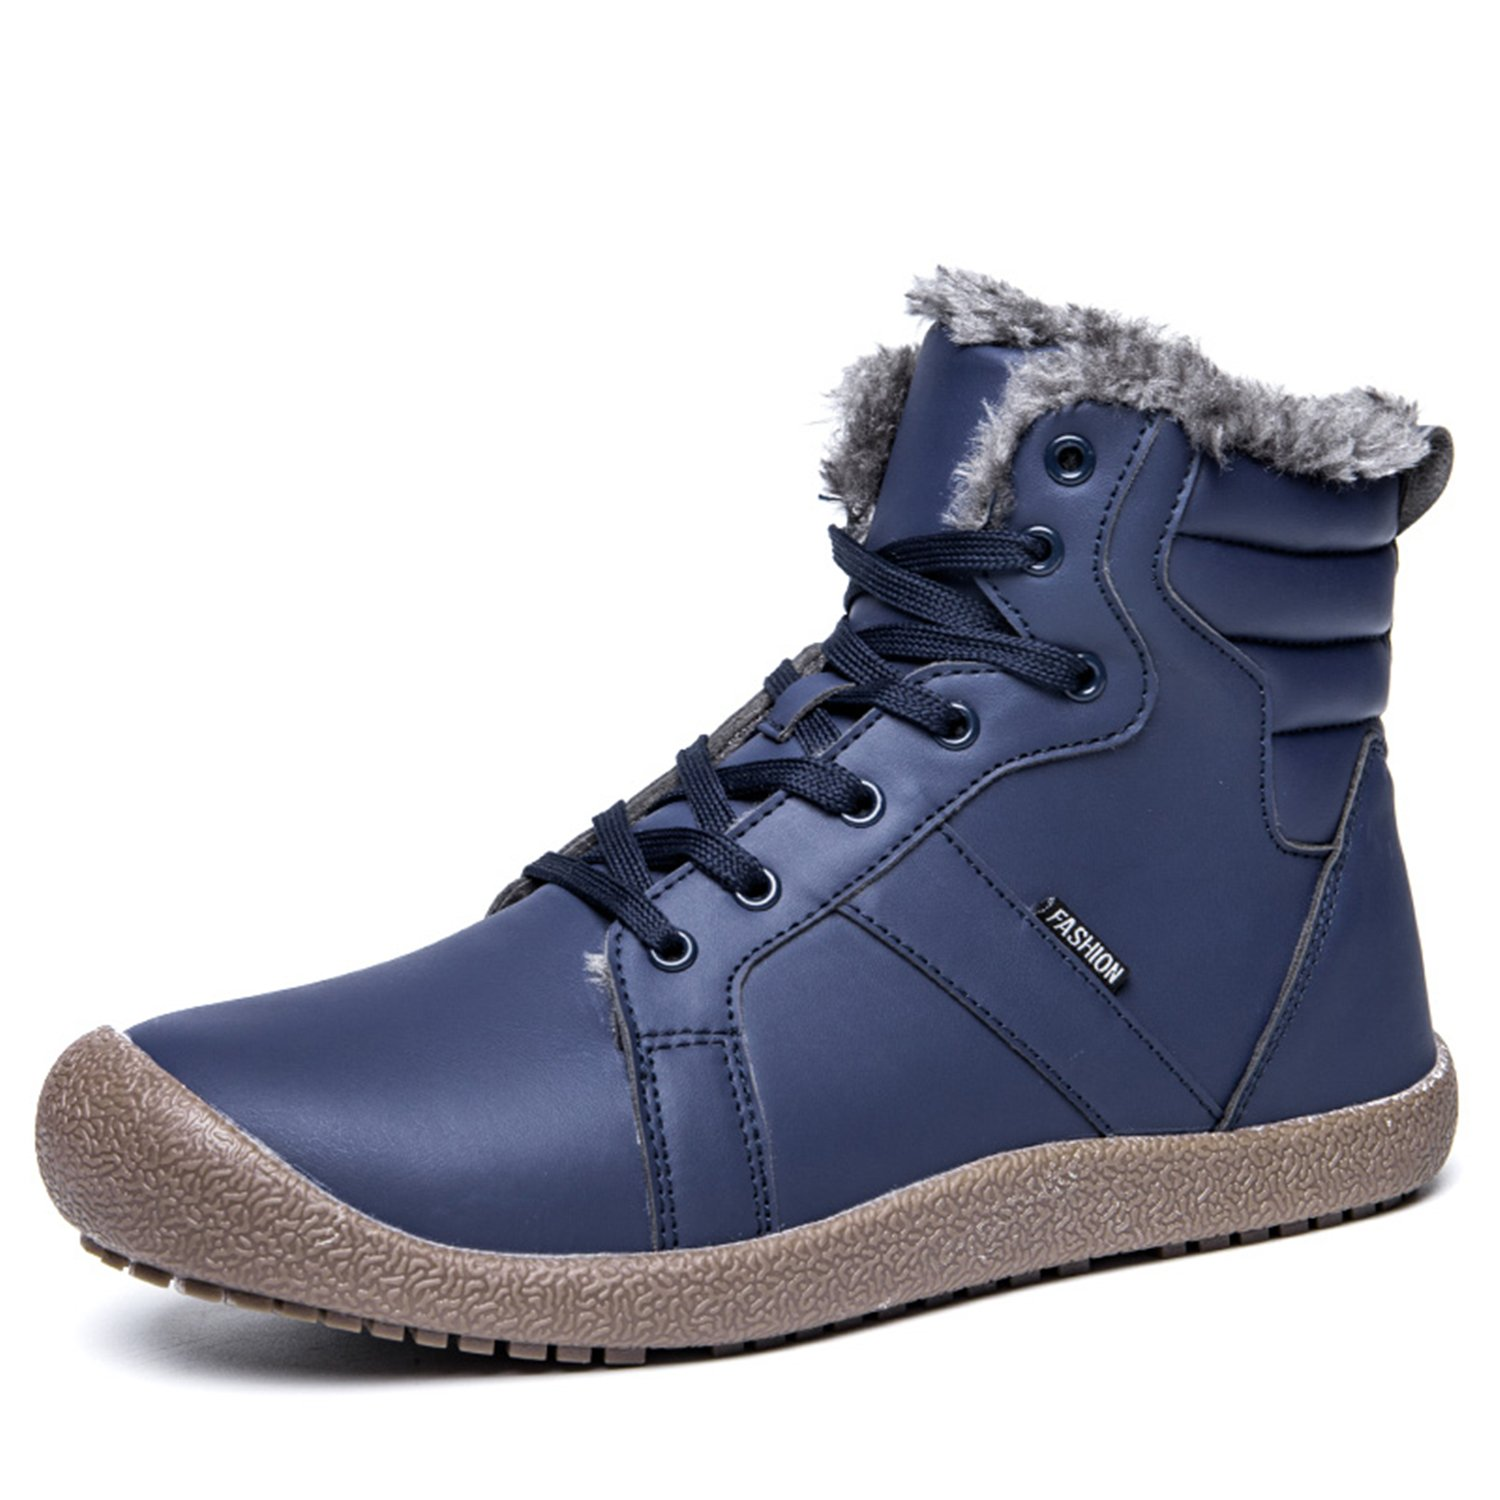 L-RUN Man Winter Boots Youth Dress Wedding Boots Comfortable Navy 15 M US by L-RUN